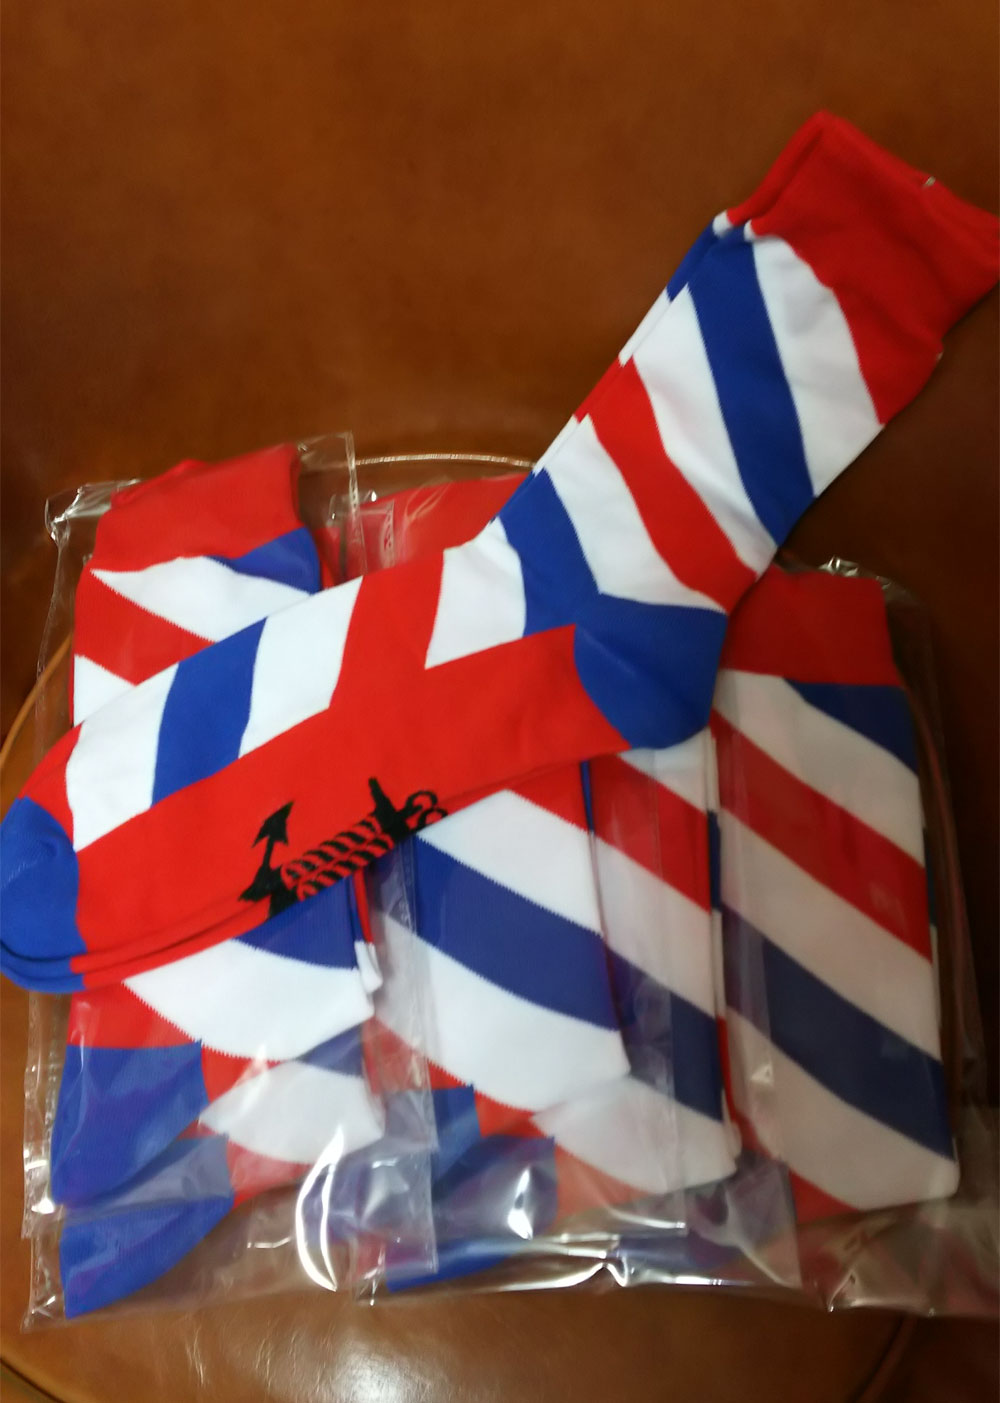 TIPTOPBARBERSOCKS